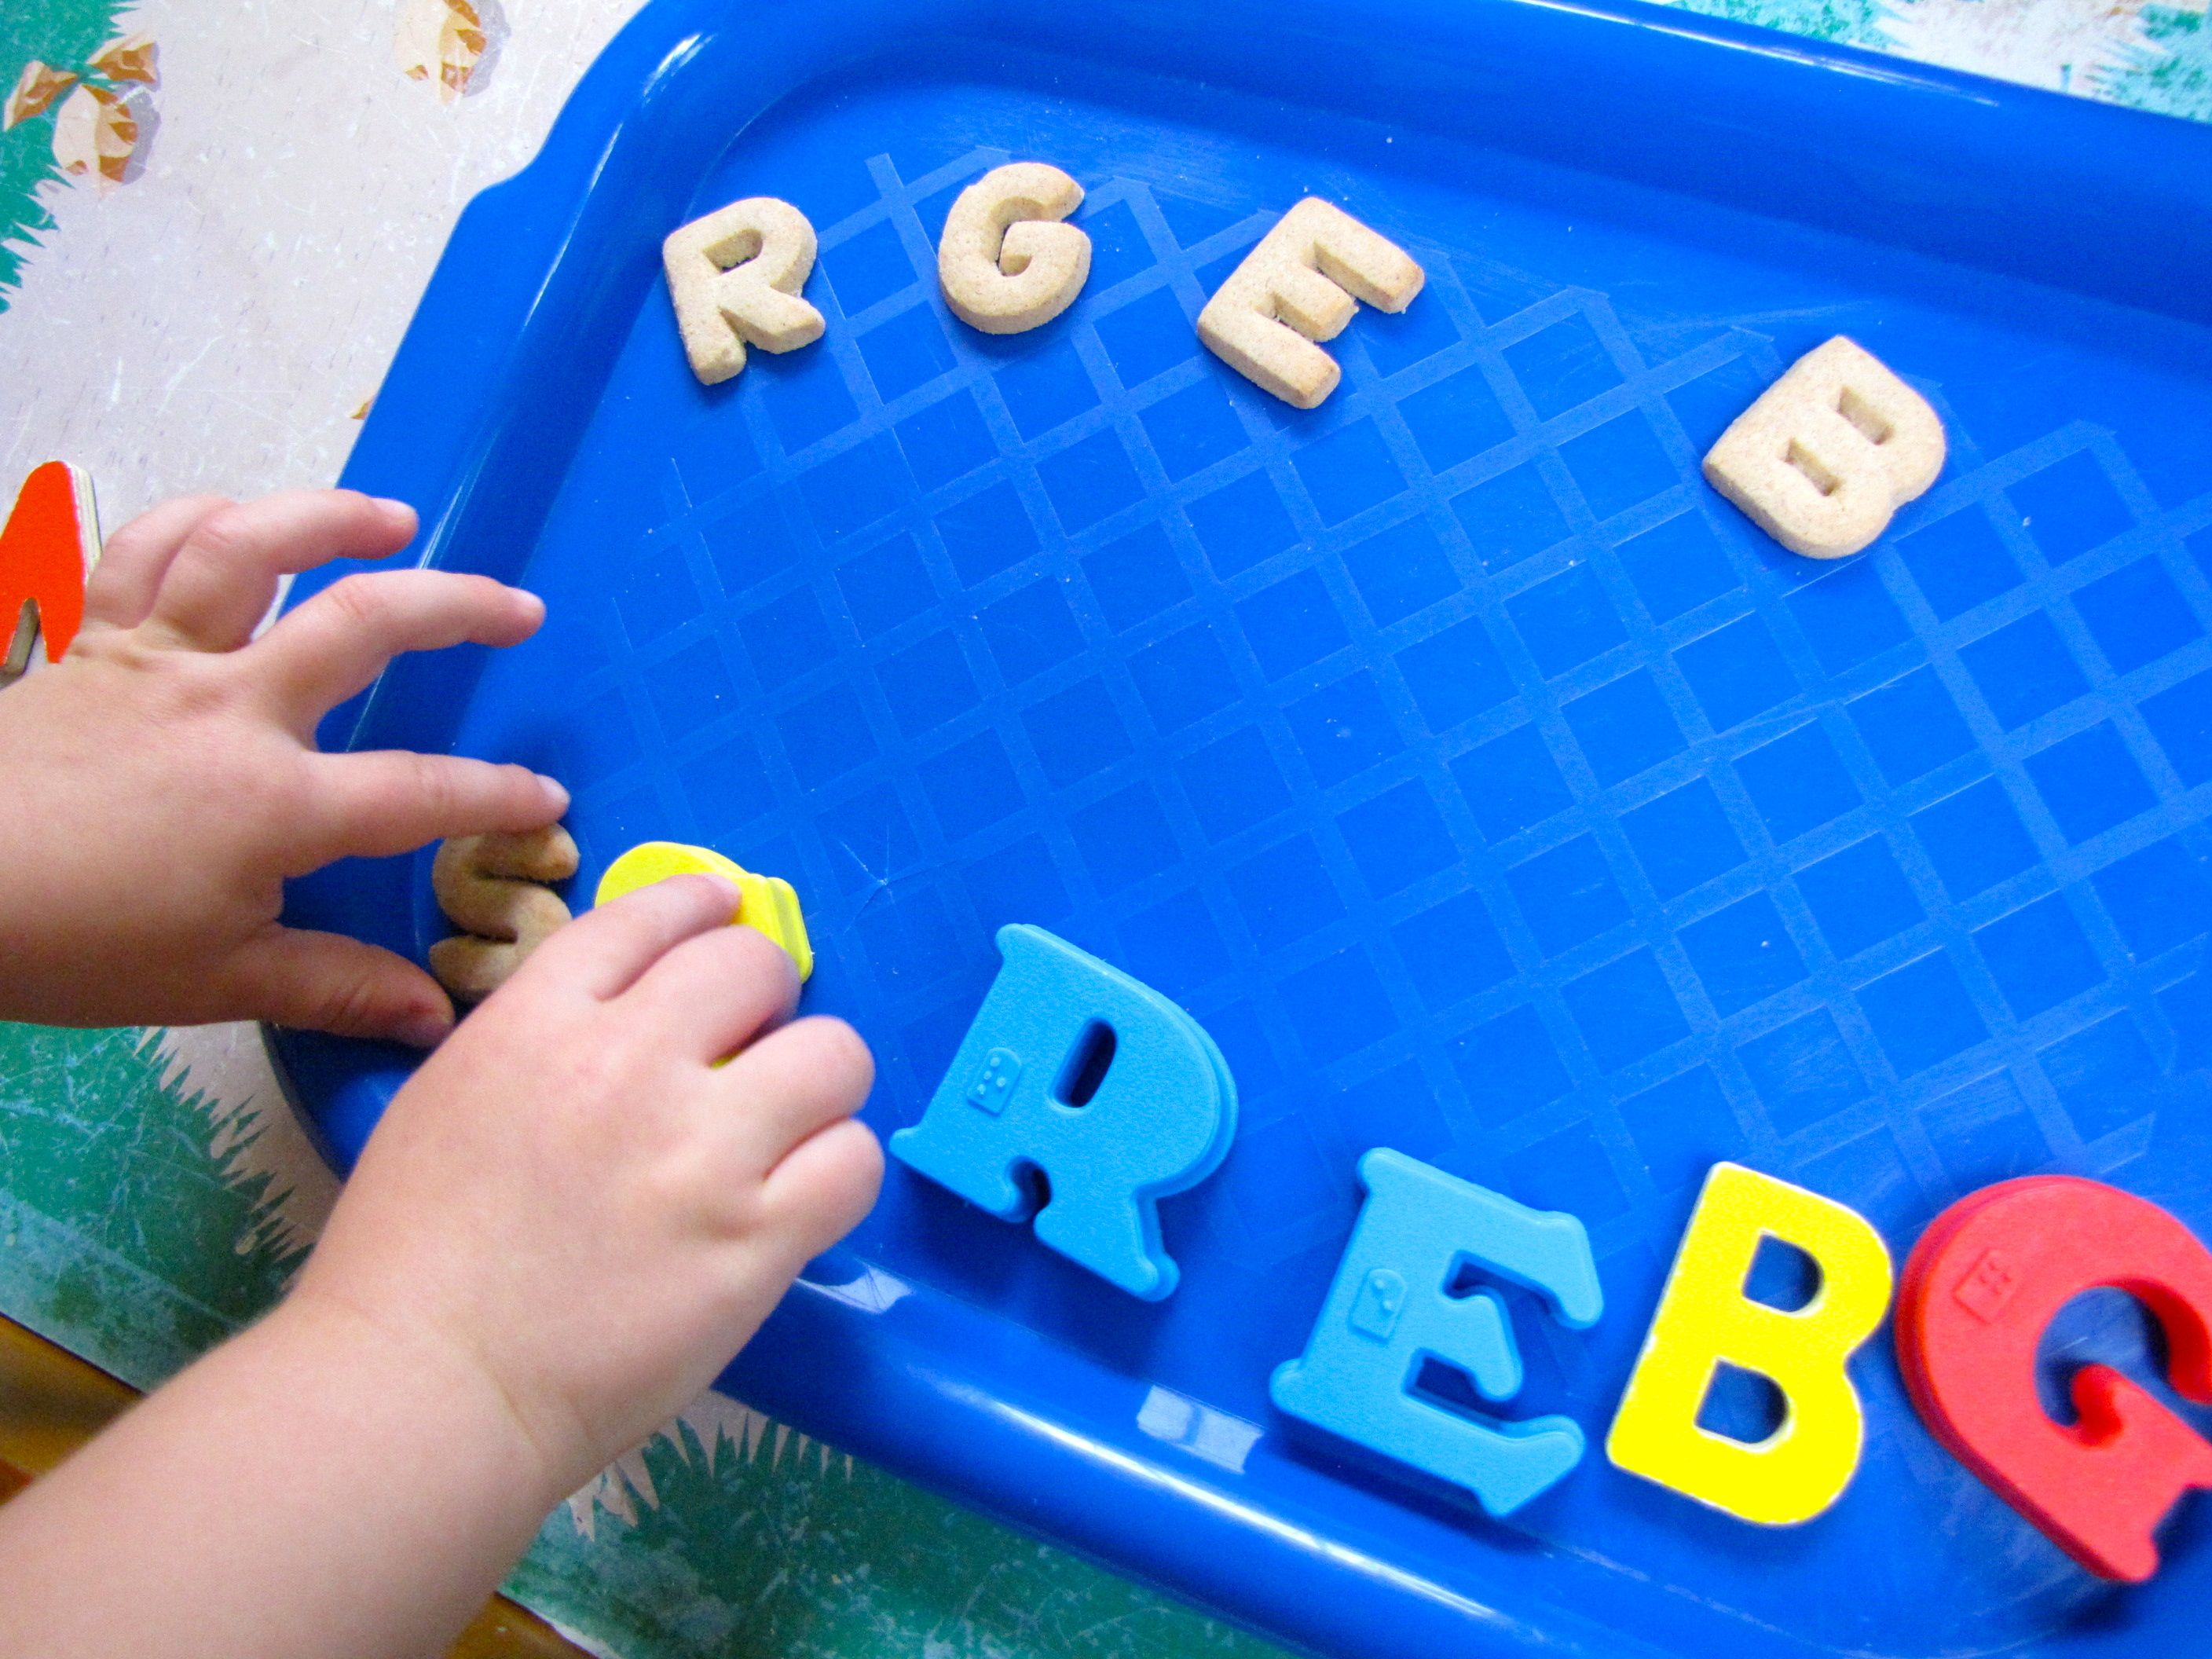 Matching letters...with cookies!